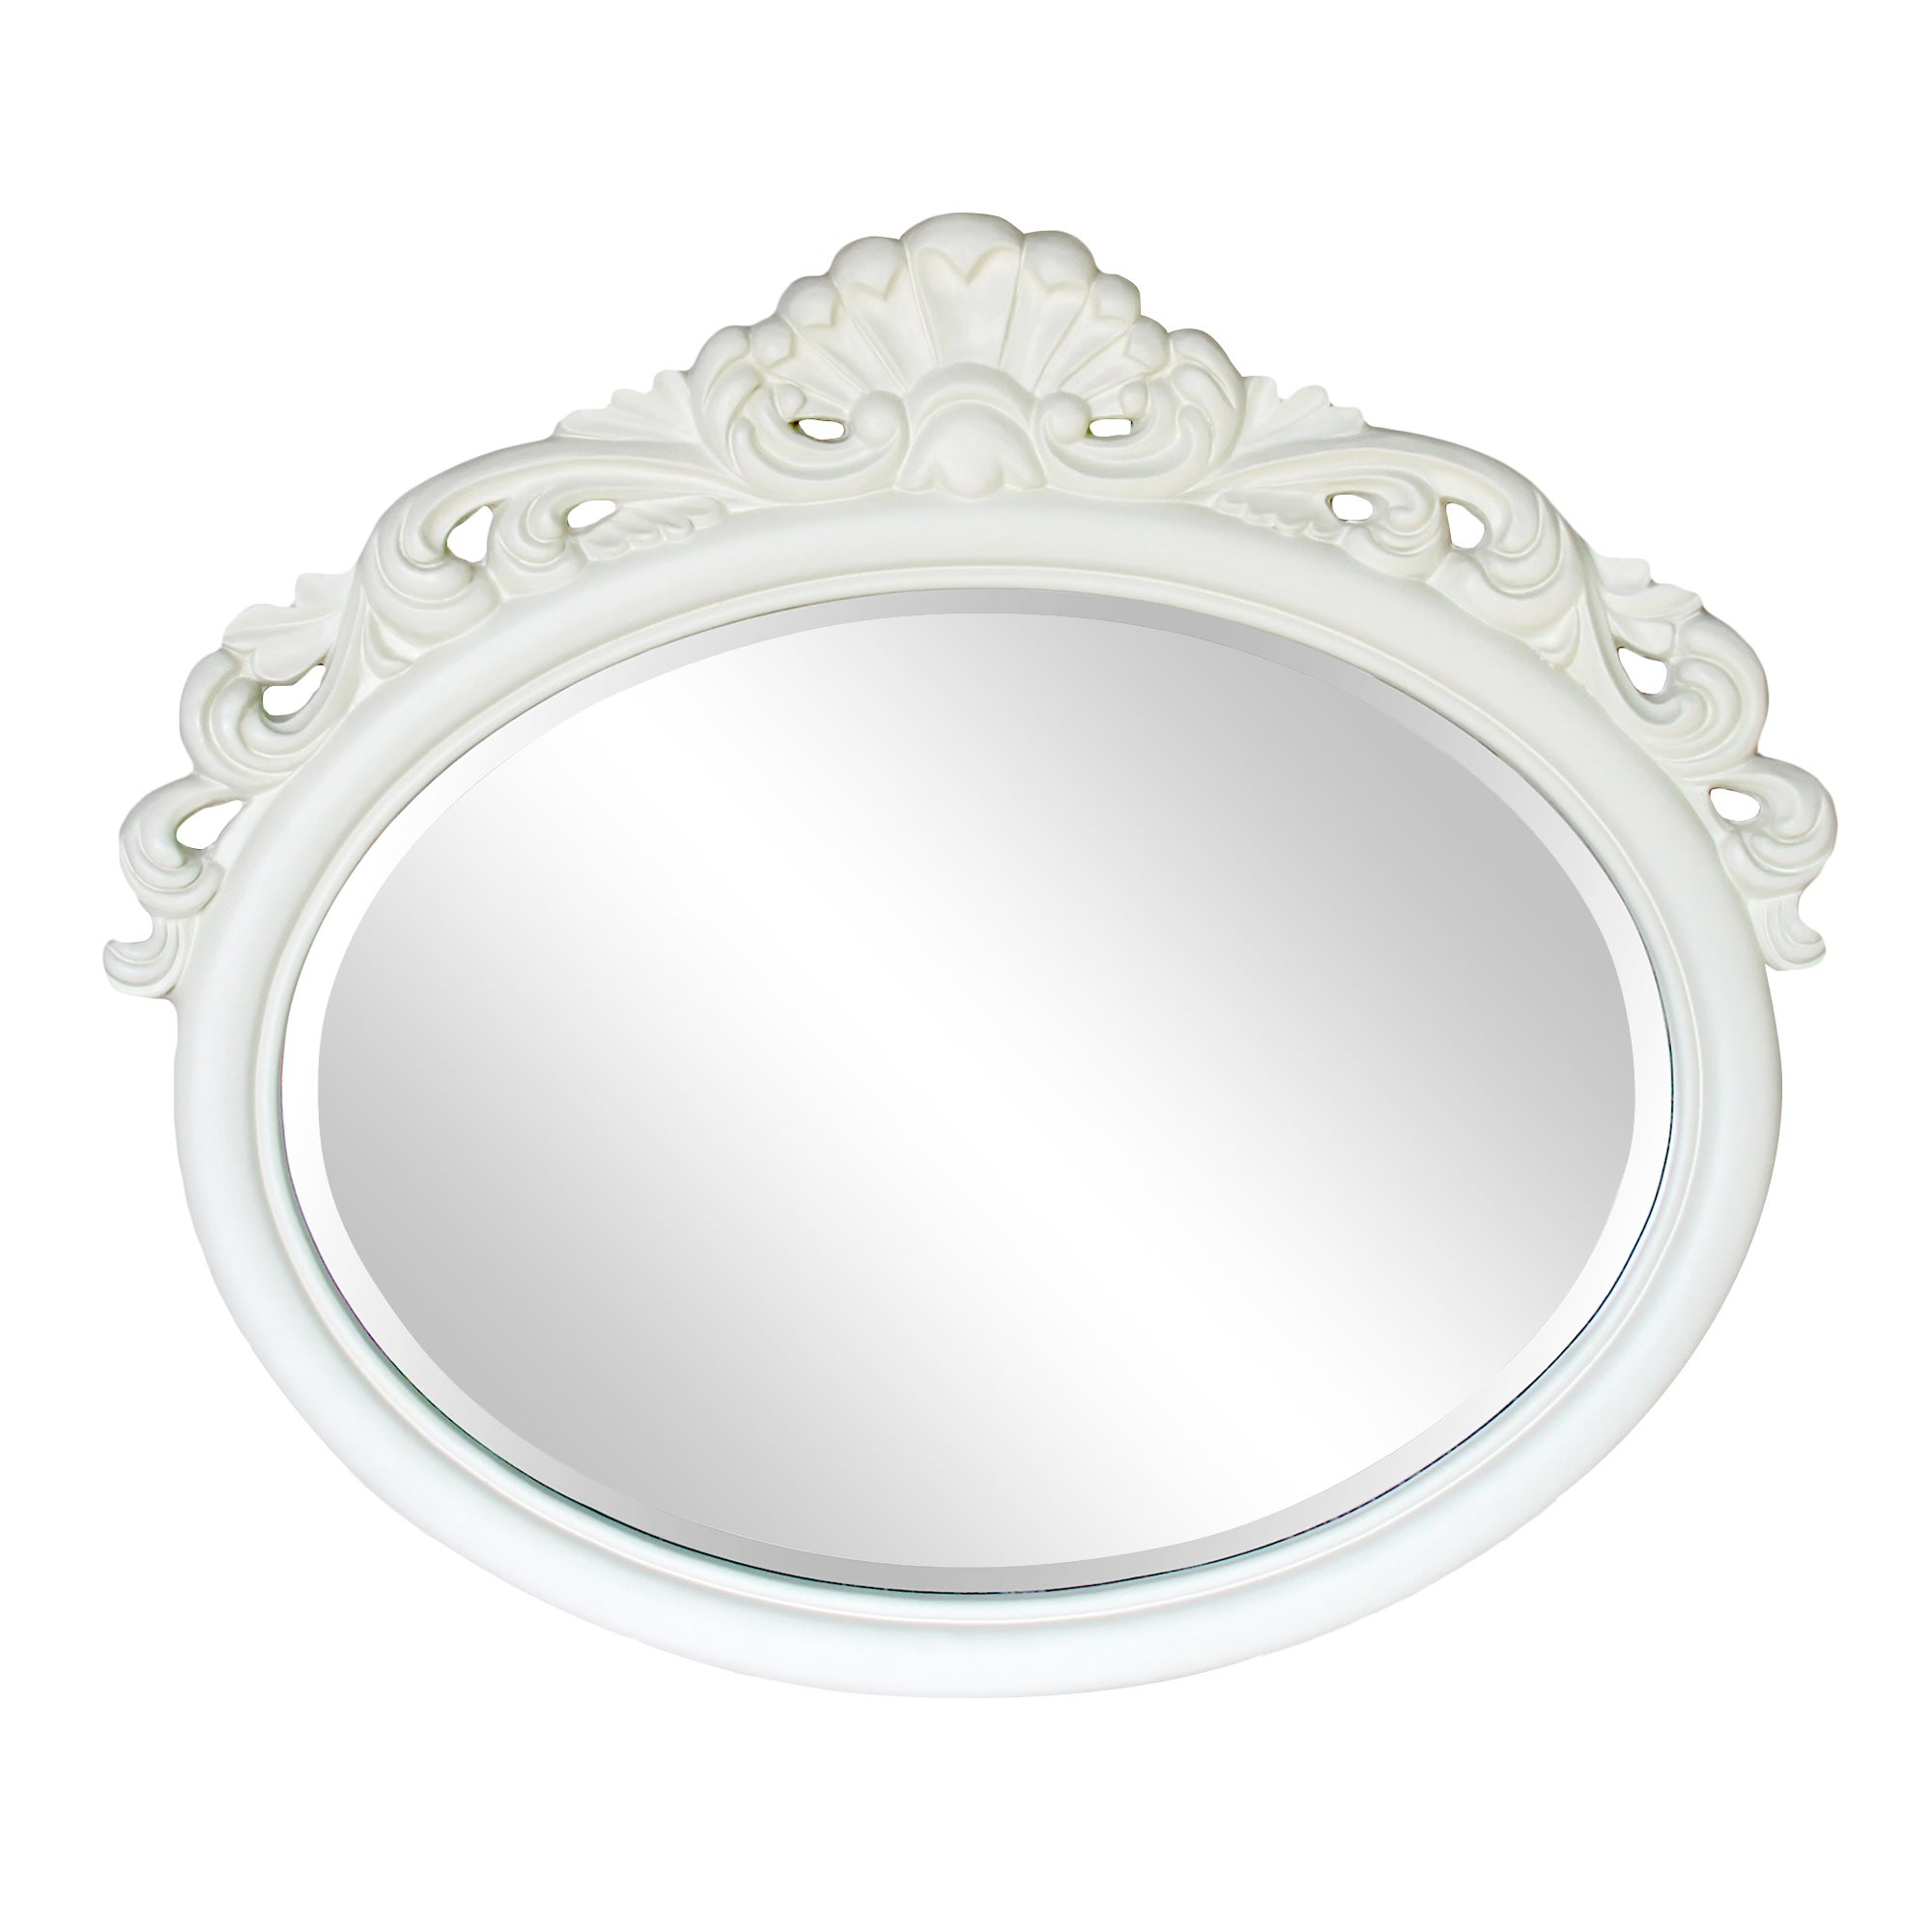 Cream Oval Crest Mirror